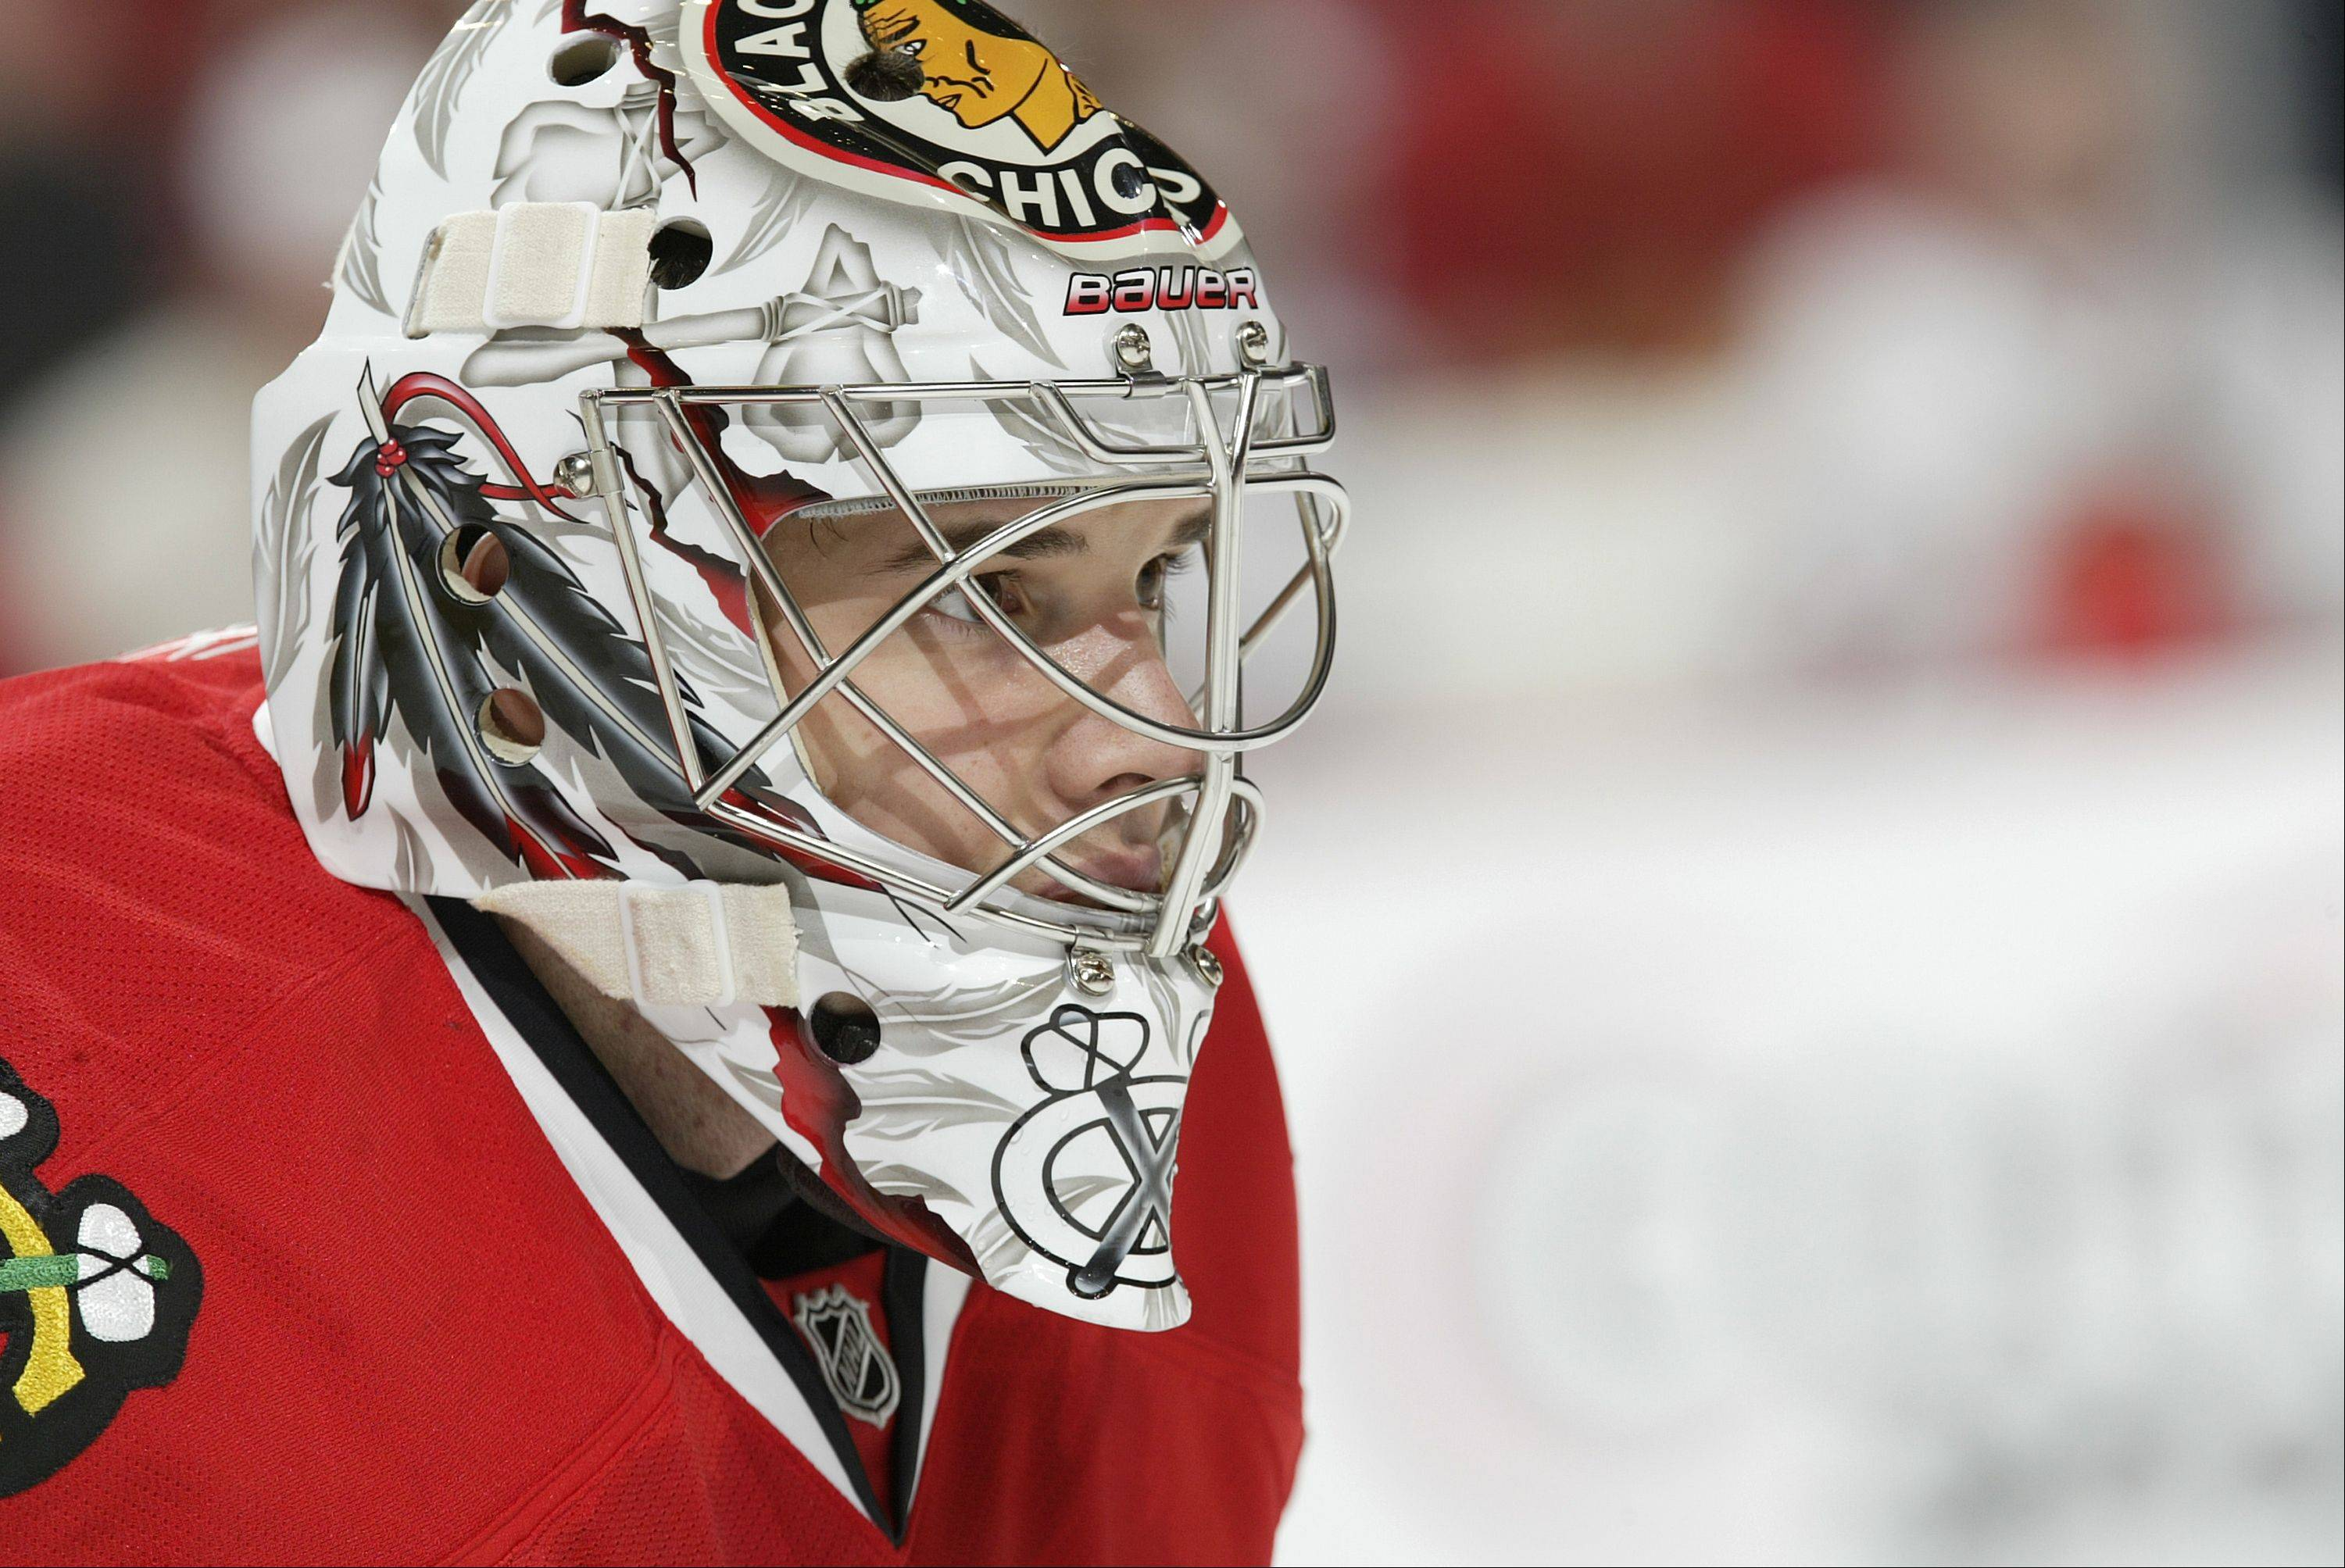 The Blackhawks will start goalie Corey Crawford in the net against the Detroit Red Wings Friday night.